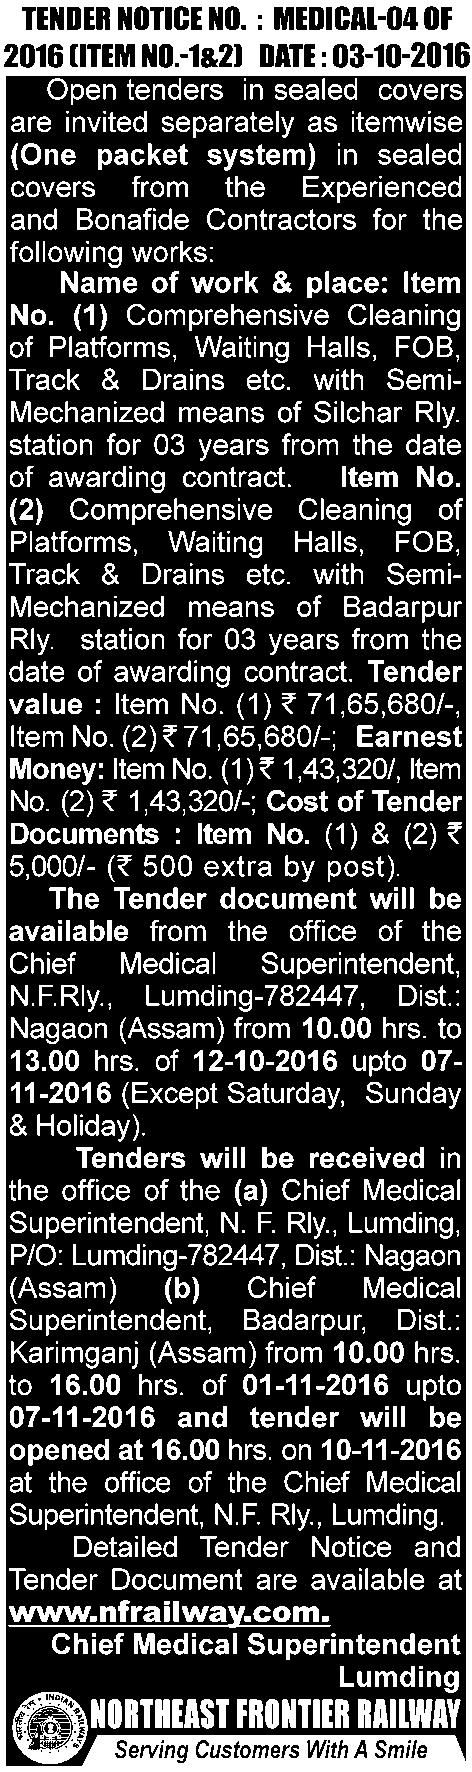 BUSINESS & ECONOMY FRIDAY, OCTOBER 21, 2016 THE ASSAM TRIBUNE, GUWAHATI 11 NOTICE INVITING QUOTATION Sealed quotations affixing court fee stamp worth Rs.8.